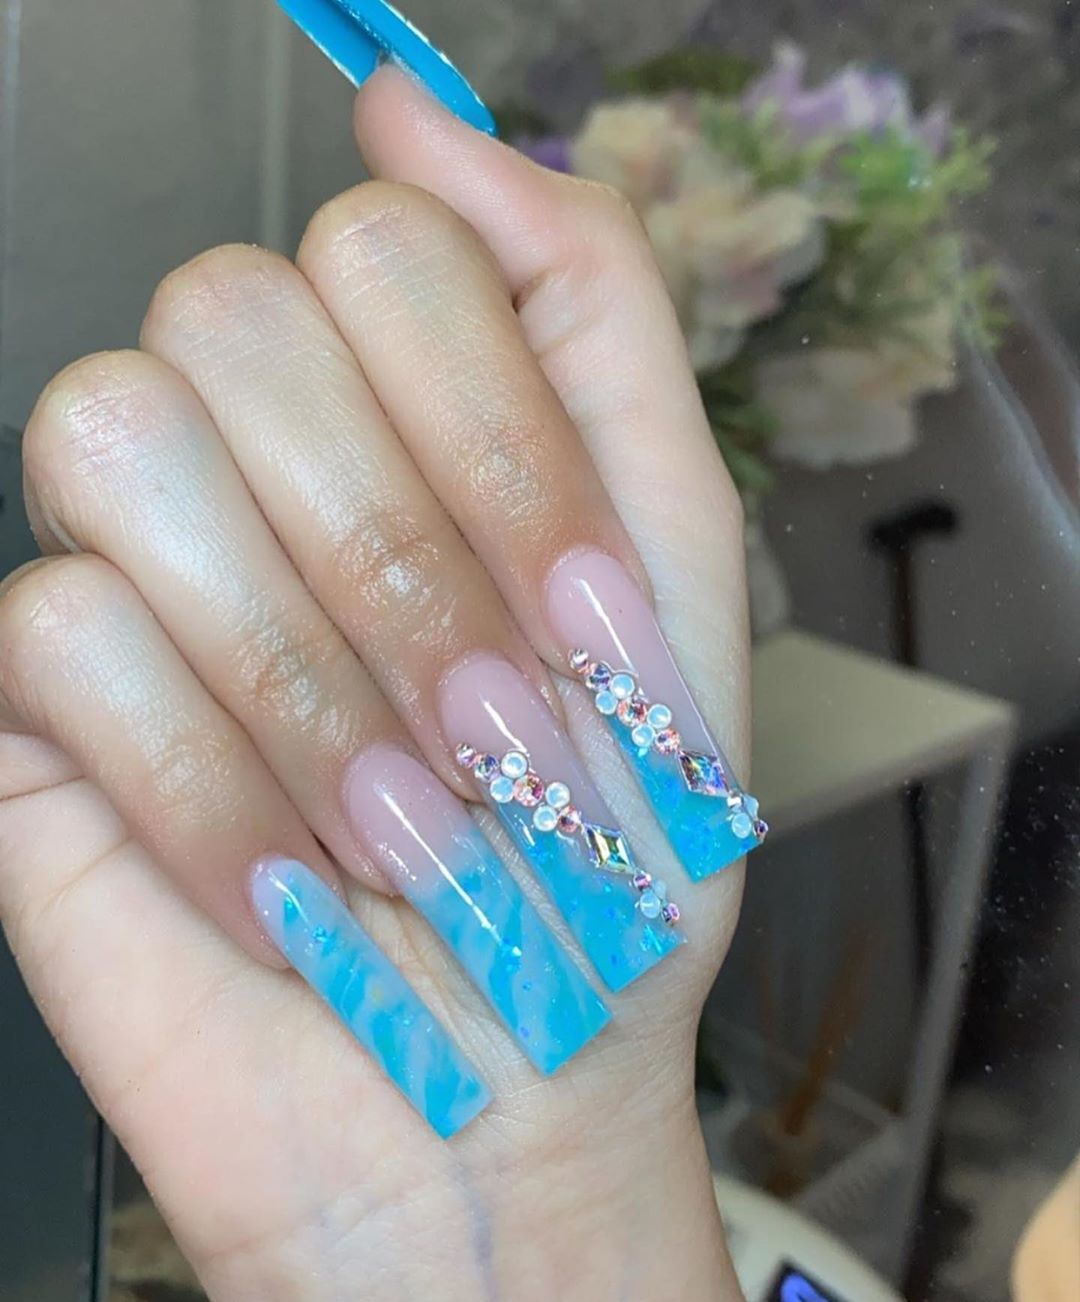 "Nail Heaven. 😍 on Instagram: ""🌊- follow @theynaildit for more daily nail content and inspo.  nailtech; @meldoesit24 ✨✨  -  -  -  #naildesigns #nailinspiration #nailinspo…"""